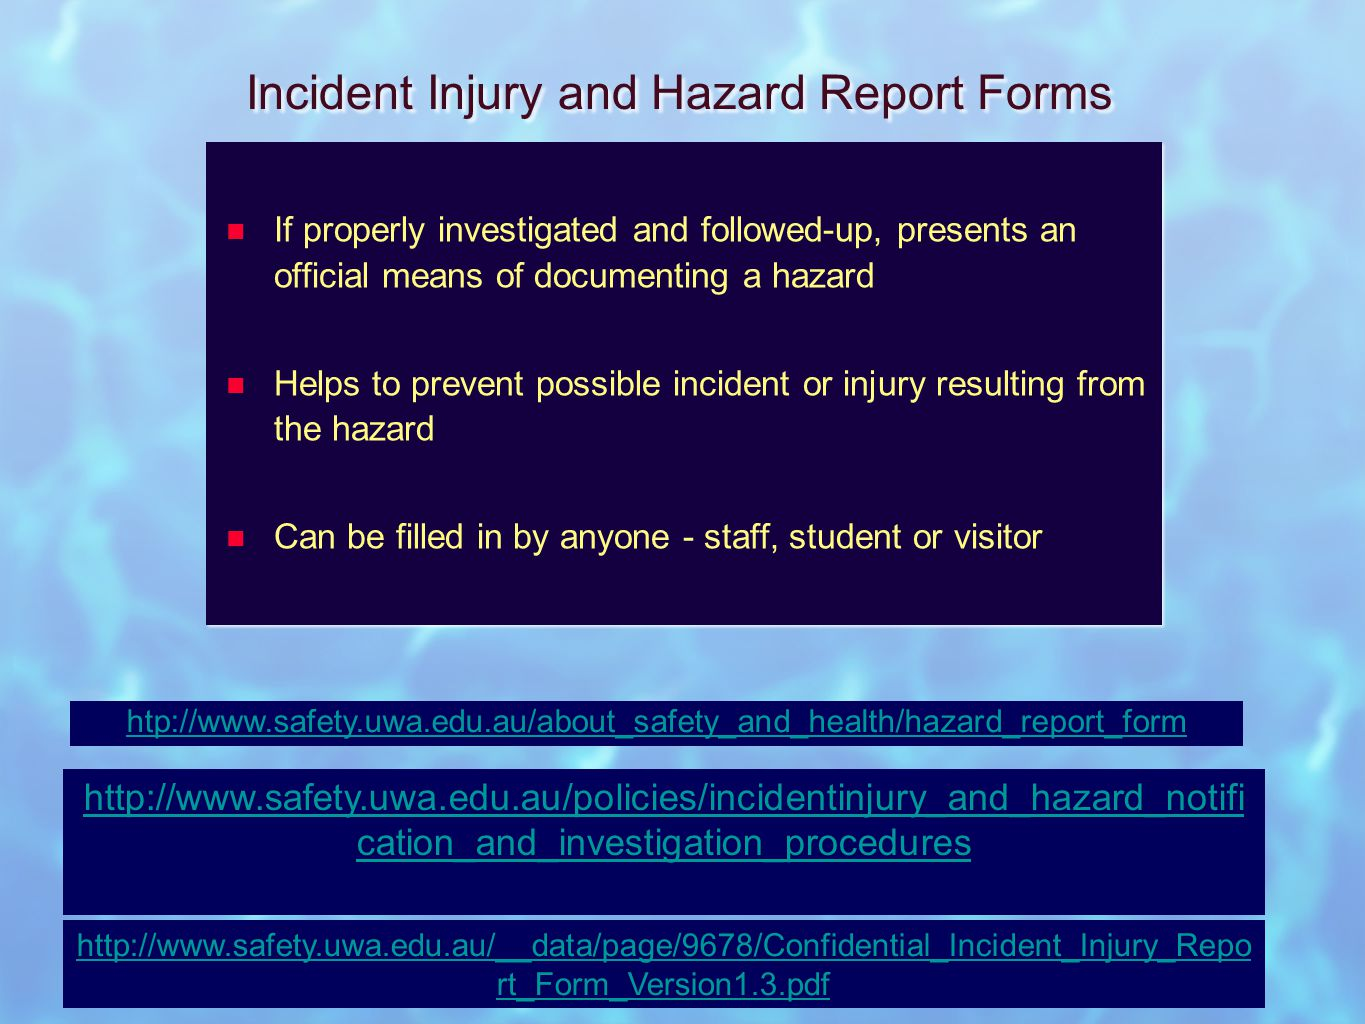 Incident Injury and Hazard Report Forms If properly investigated and followed-up, presents an official means of documenting a hazard Helps to prevent possible incident or injury resulting from the hazard Can be filled in by anyone - staff, student or visitor If properly investigated and followed-up, presents an official means of documenting a hazard Helps to prevent possible incident or injury resulting from the hazard Can be filled in by anyone - staff, student or visitor htp://www.safety.uwa.edu.au/about_safety_and_health/hazard_report_form http://www.safety.uwa.edu.au/policies/incidentinjury_and_hazard_notifi cation_and_investigation_procedures http://www.safety.uwa.edu.au/__data/page/9678/Confidential_Incident_Injury_Repo rt_Form_Version1.3.pdf